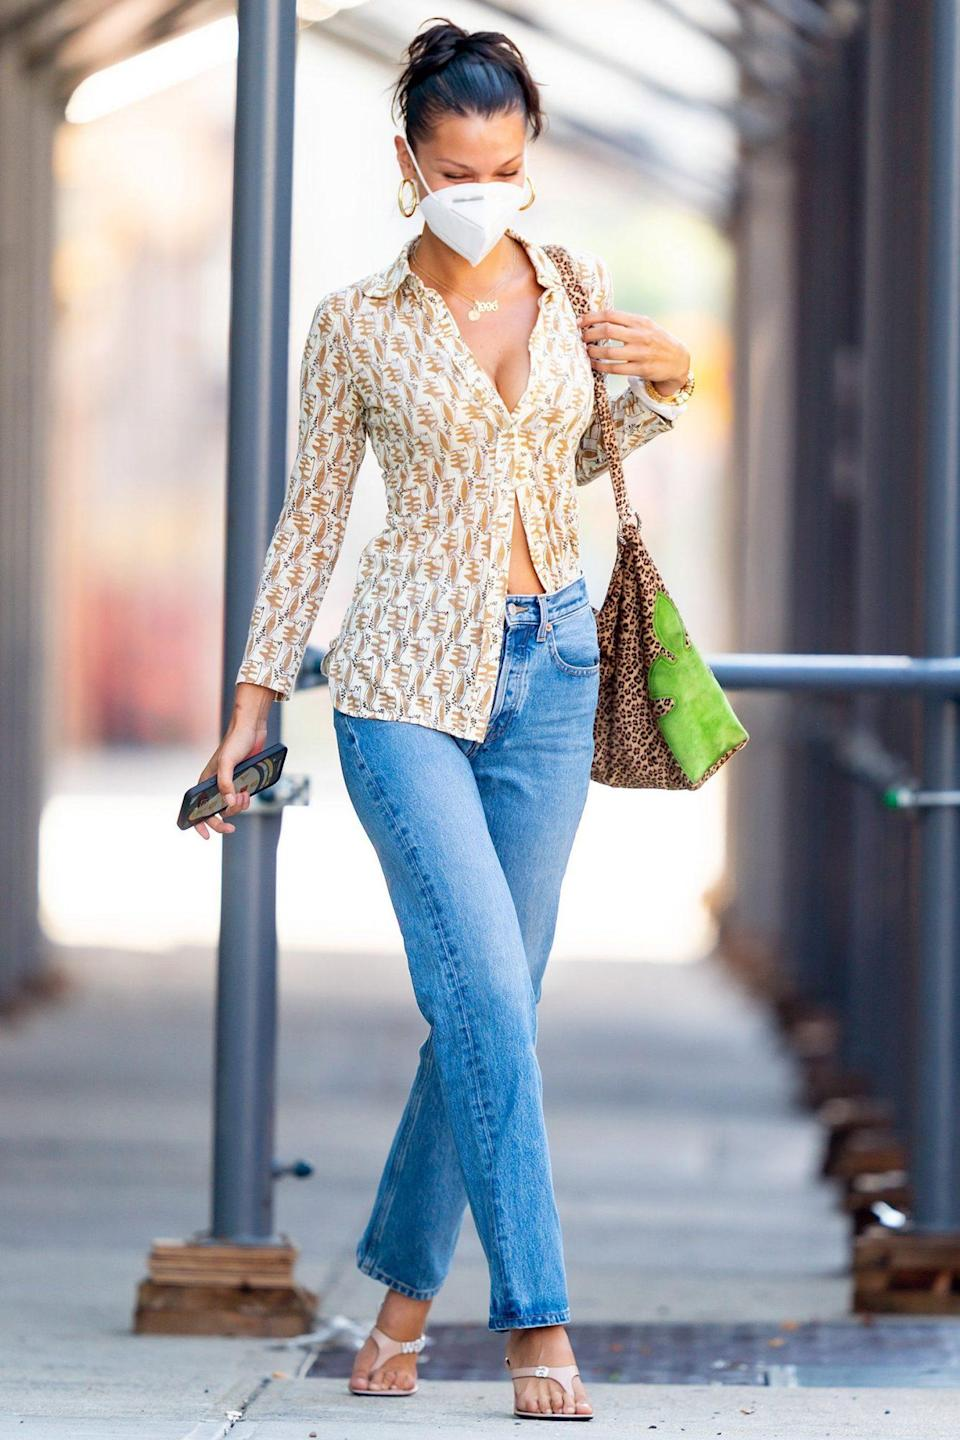 <p>Bella Hadid steps out in N.Y.C. in style on Monday, wearing a chic blouse, jeans and sandals.</p>